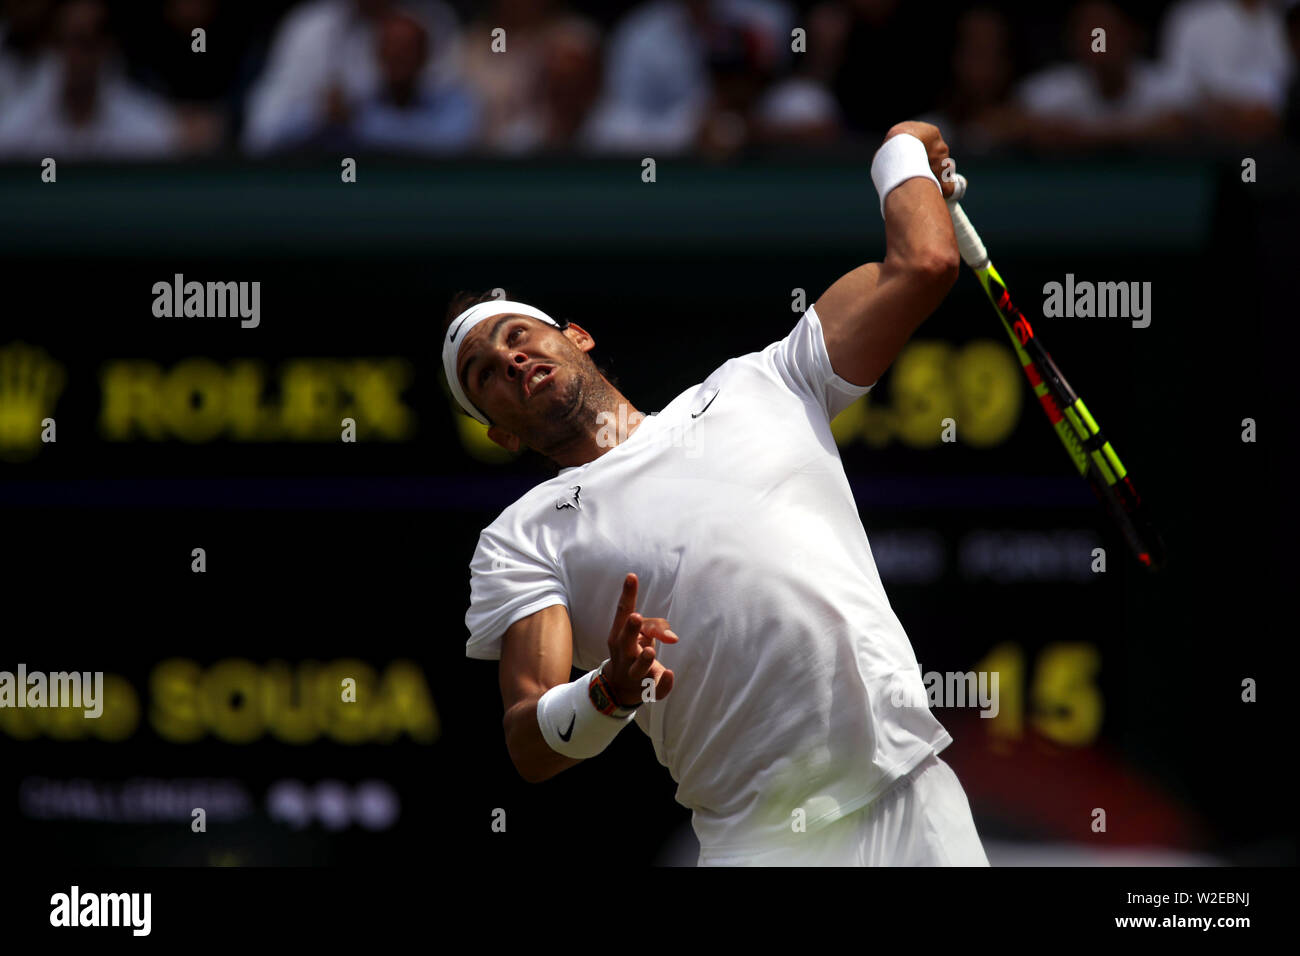 Wimbledon, London, UK. 8th July, 2019. Rafael Nadal serving to Joao Sousa during their fourth round match against at Wimbledon today. Credit: Adam Stoltman/Alamy Live News Stock Photo